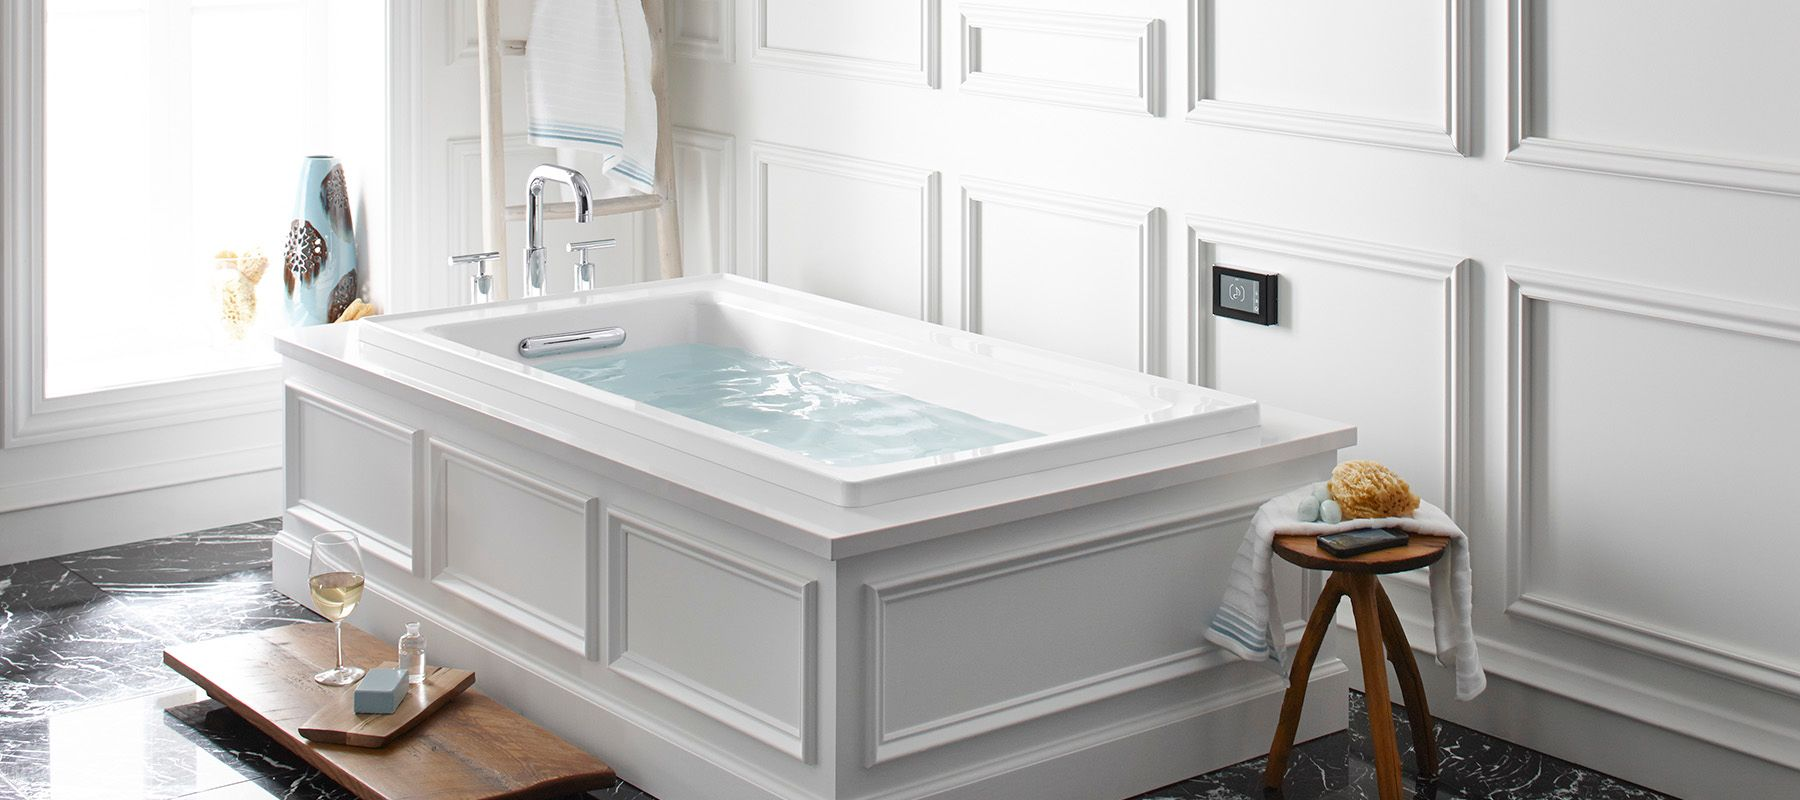 Cute How To Paint A Bathtub Thin Bath Tub Paint Regular Painting Bathtub Bath Refinishing Service Old Paint Tub Blue Painting A Tub